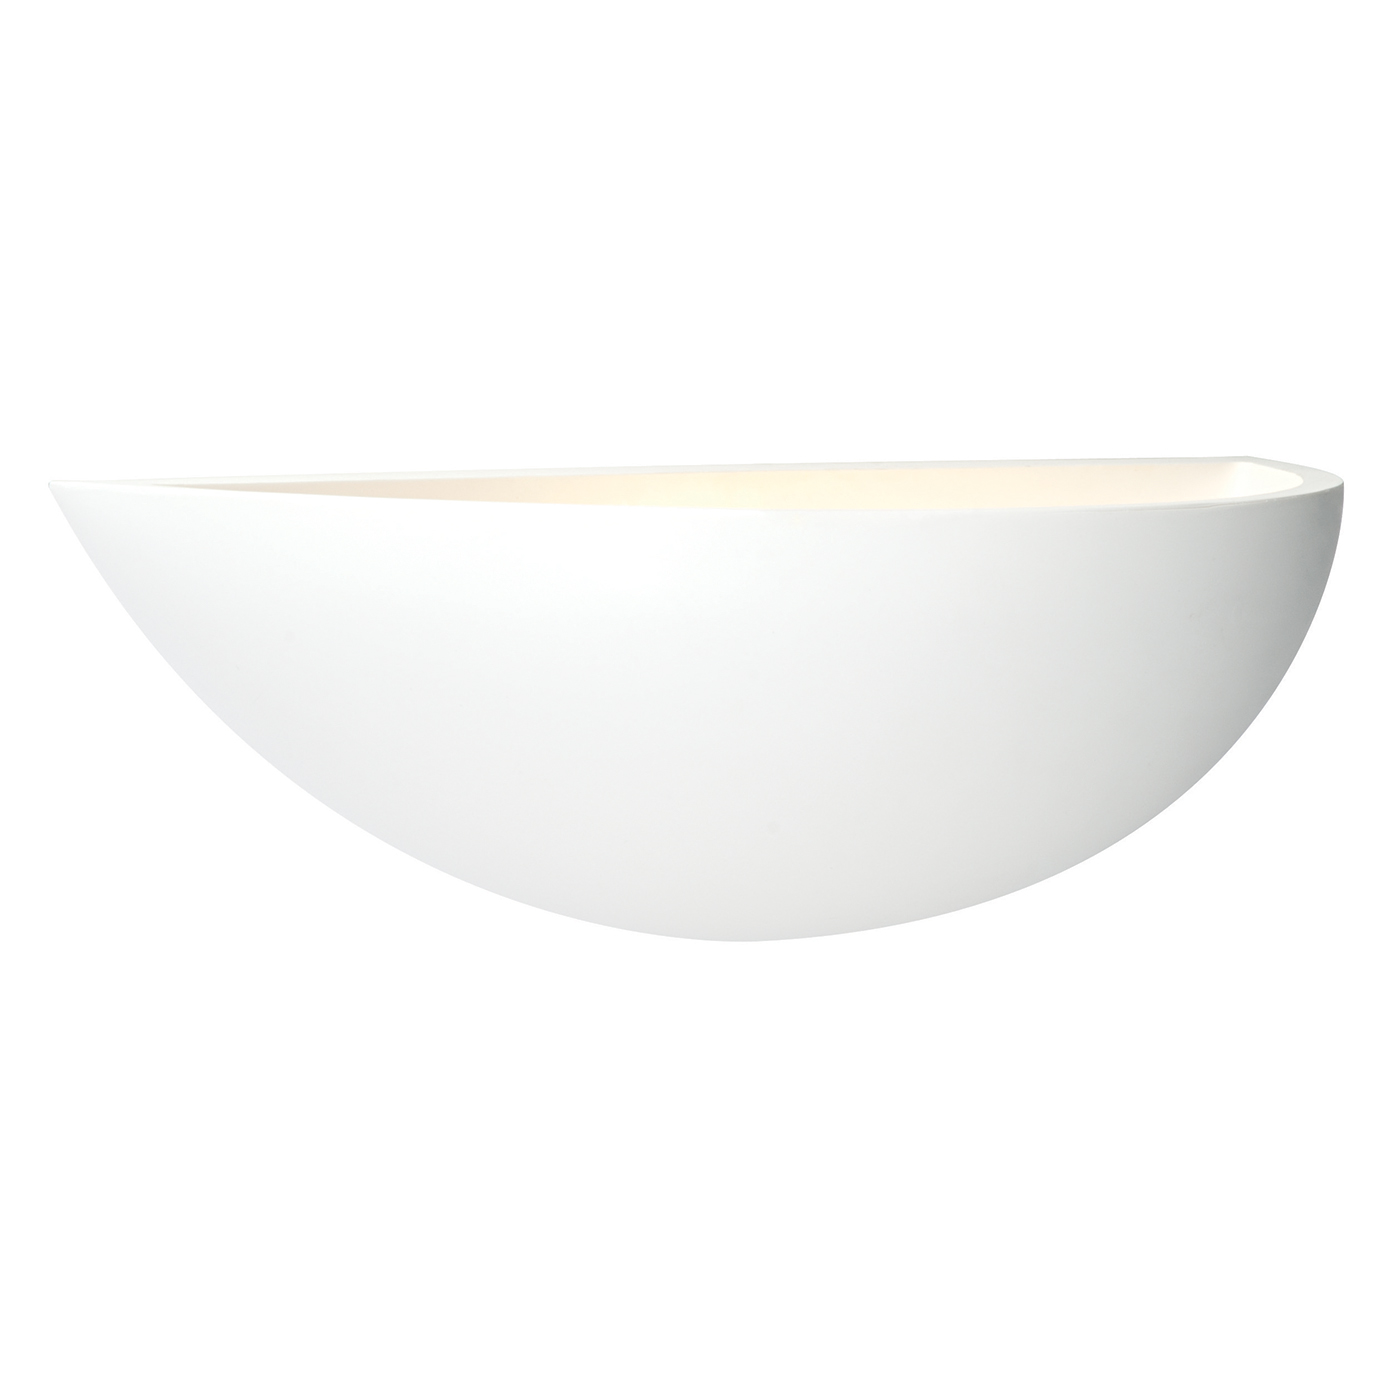 Endon Mini crescent 1lt wall uplighter 40W White plaster